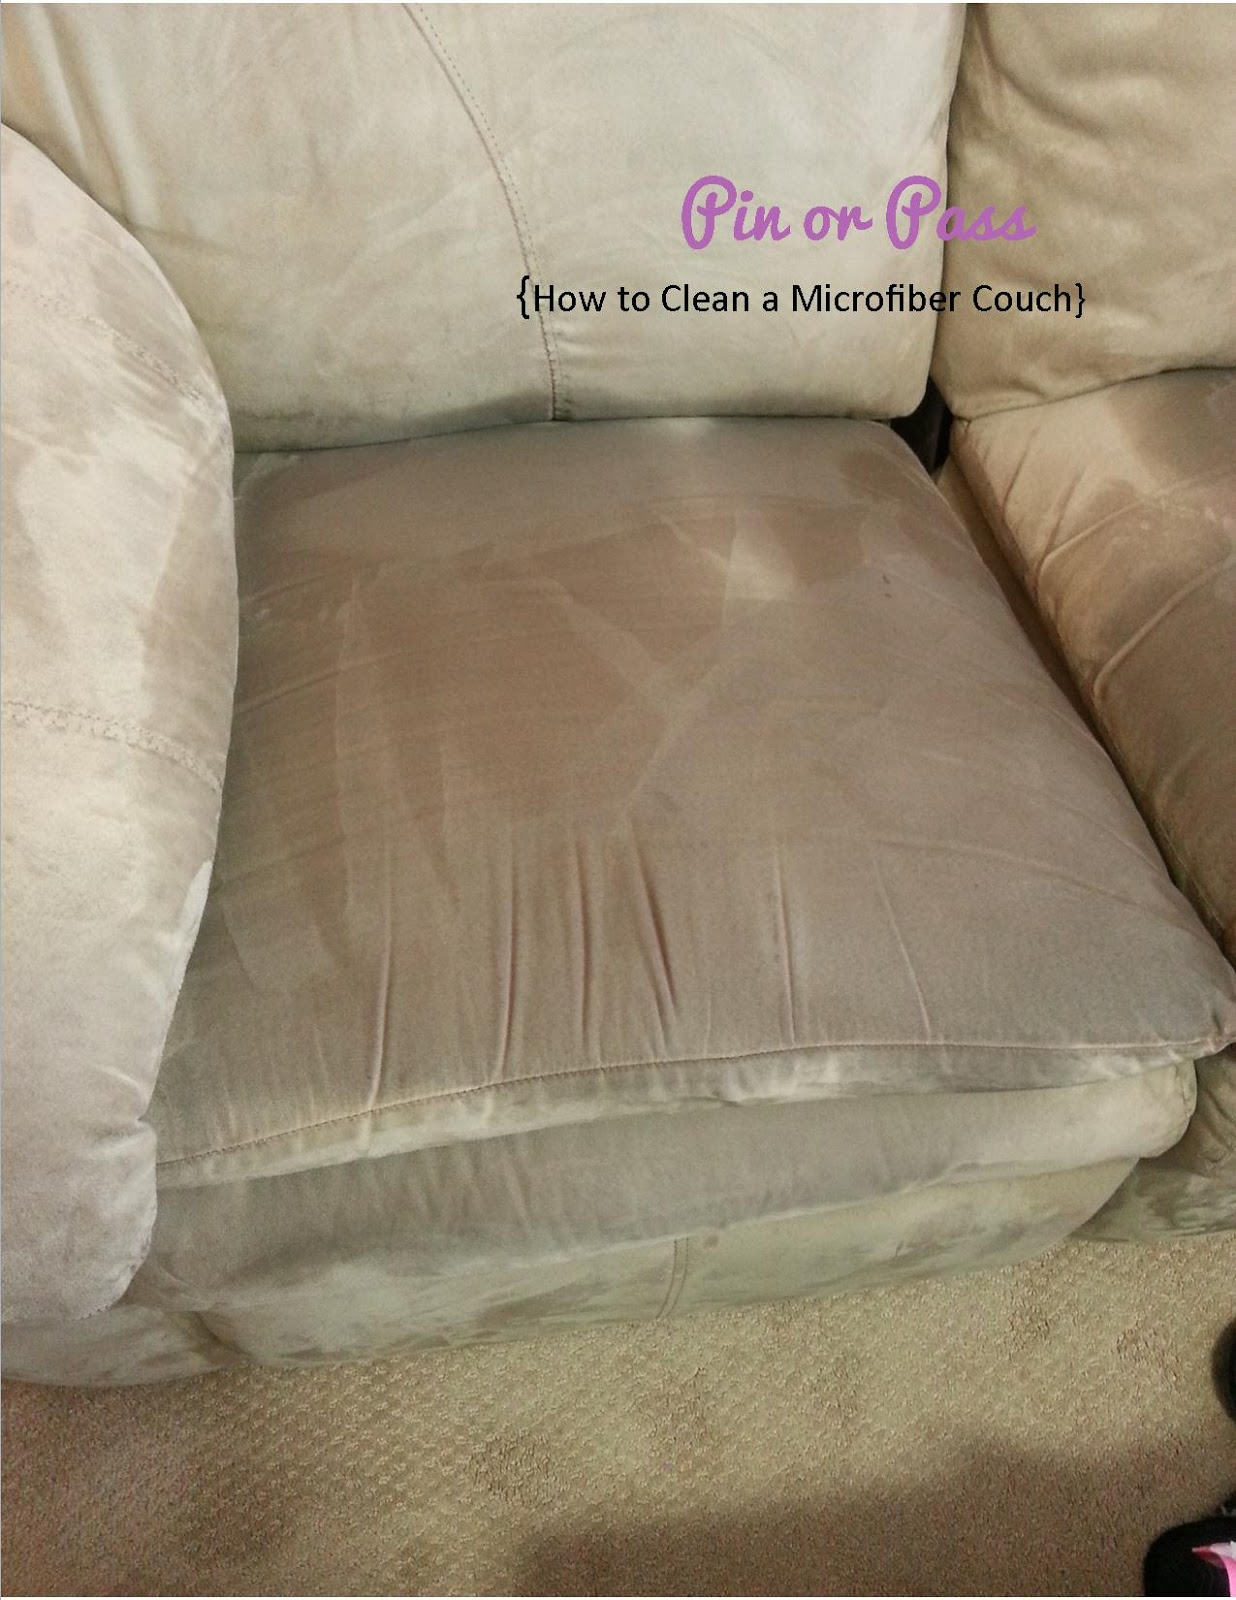 how can i clean my sofa memory foam bed mattress uk pin or pass to a microfiber couch